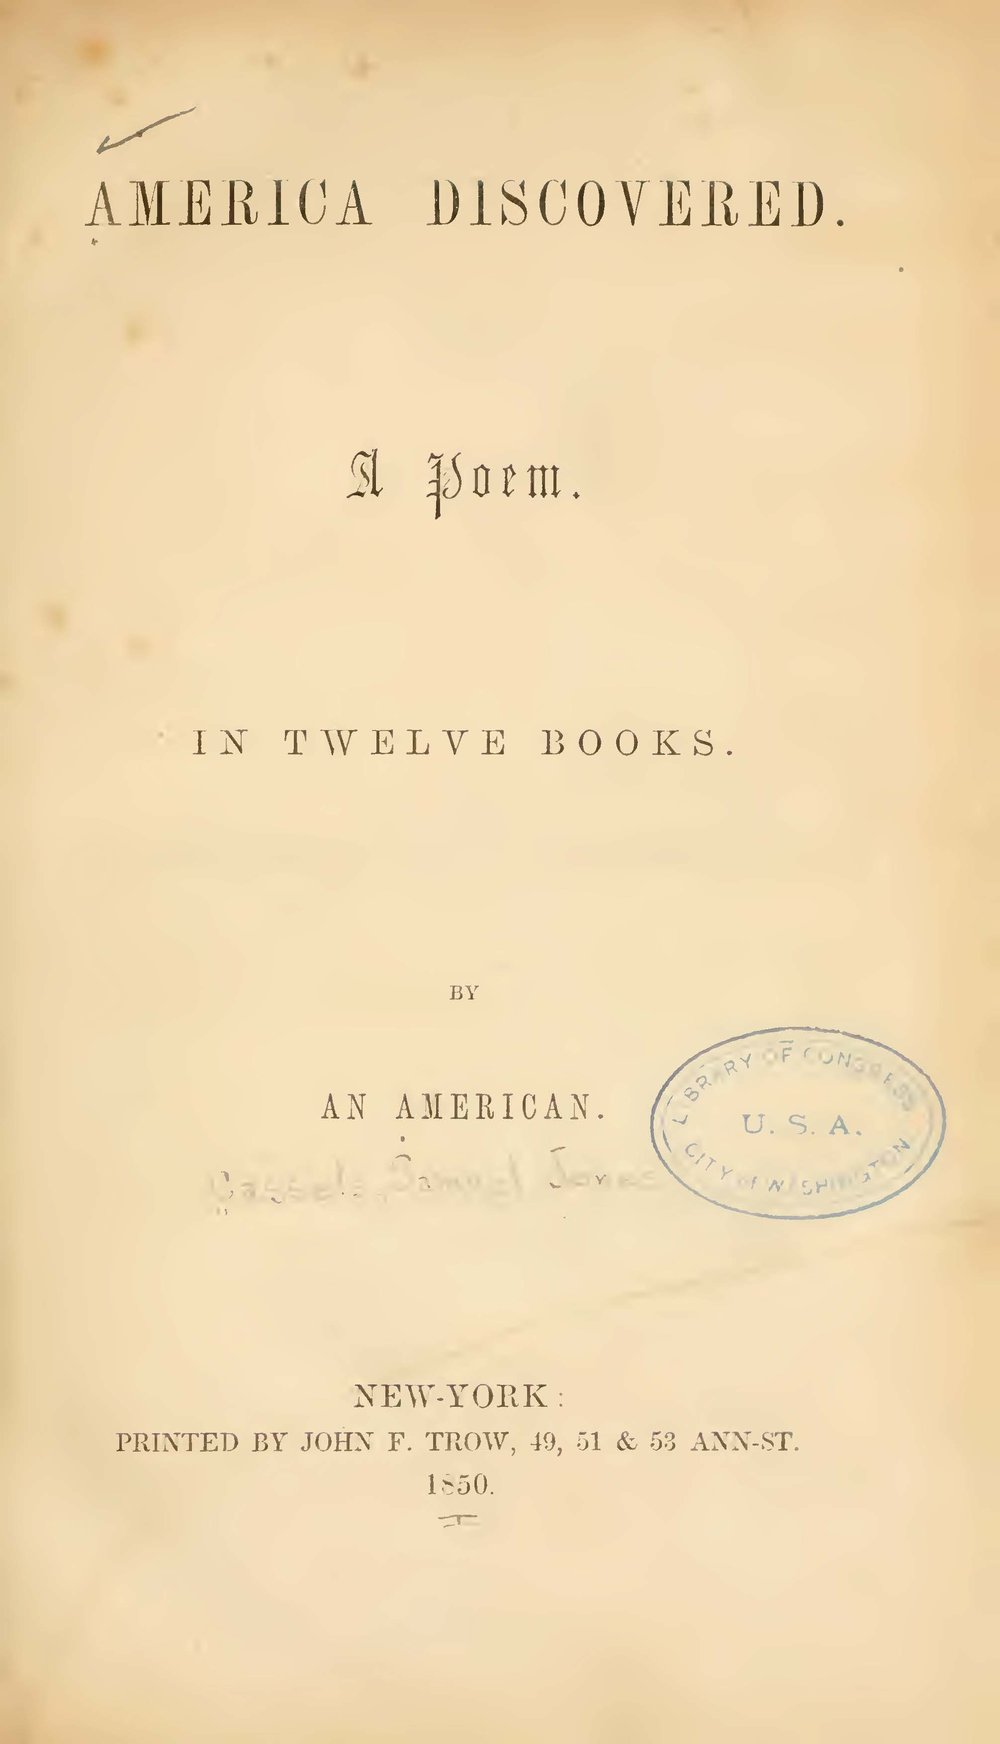 Cassells, Samuel J., America Discovered Title Page.jpg